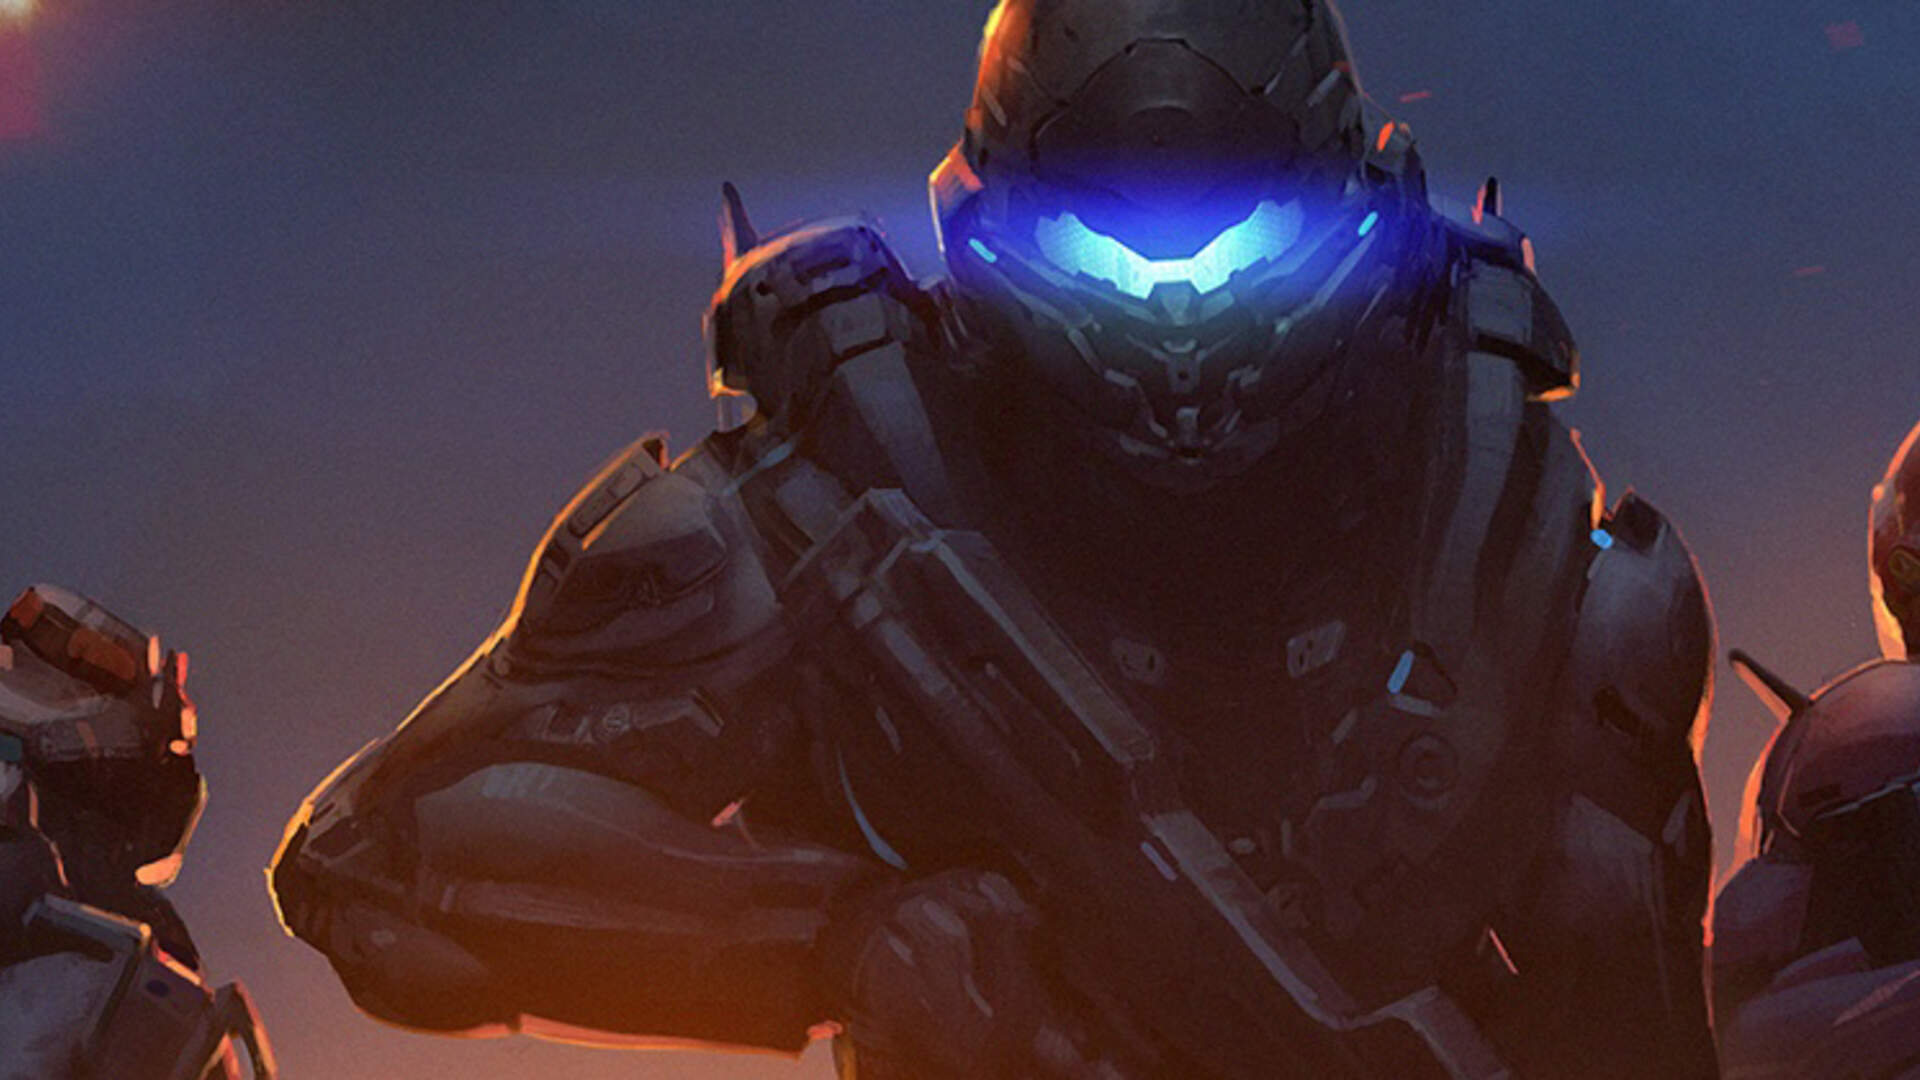 Halo 5: Guardians - All Intel Locations Guide